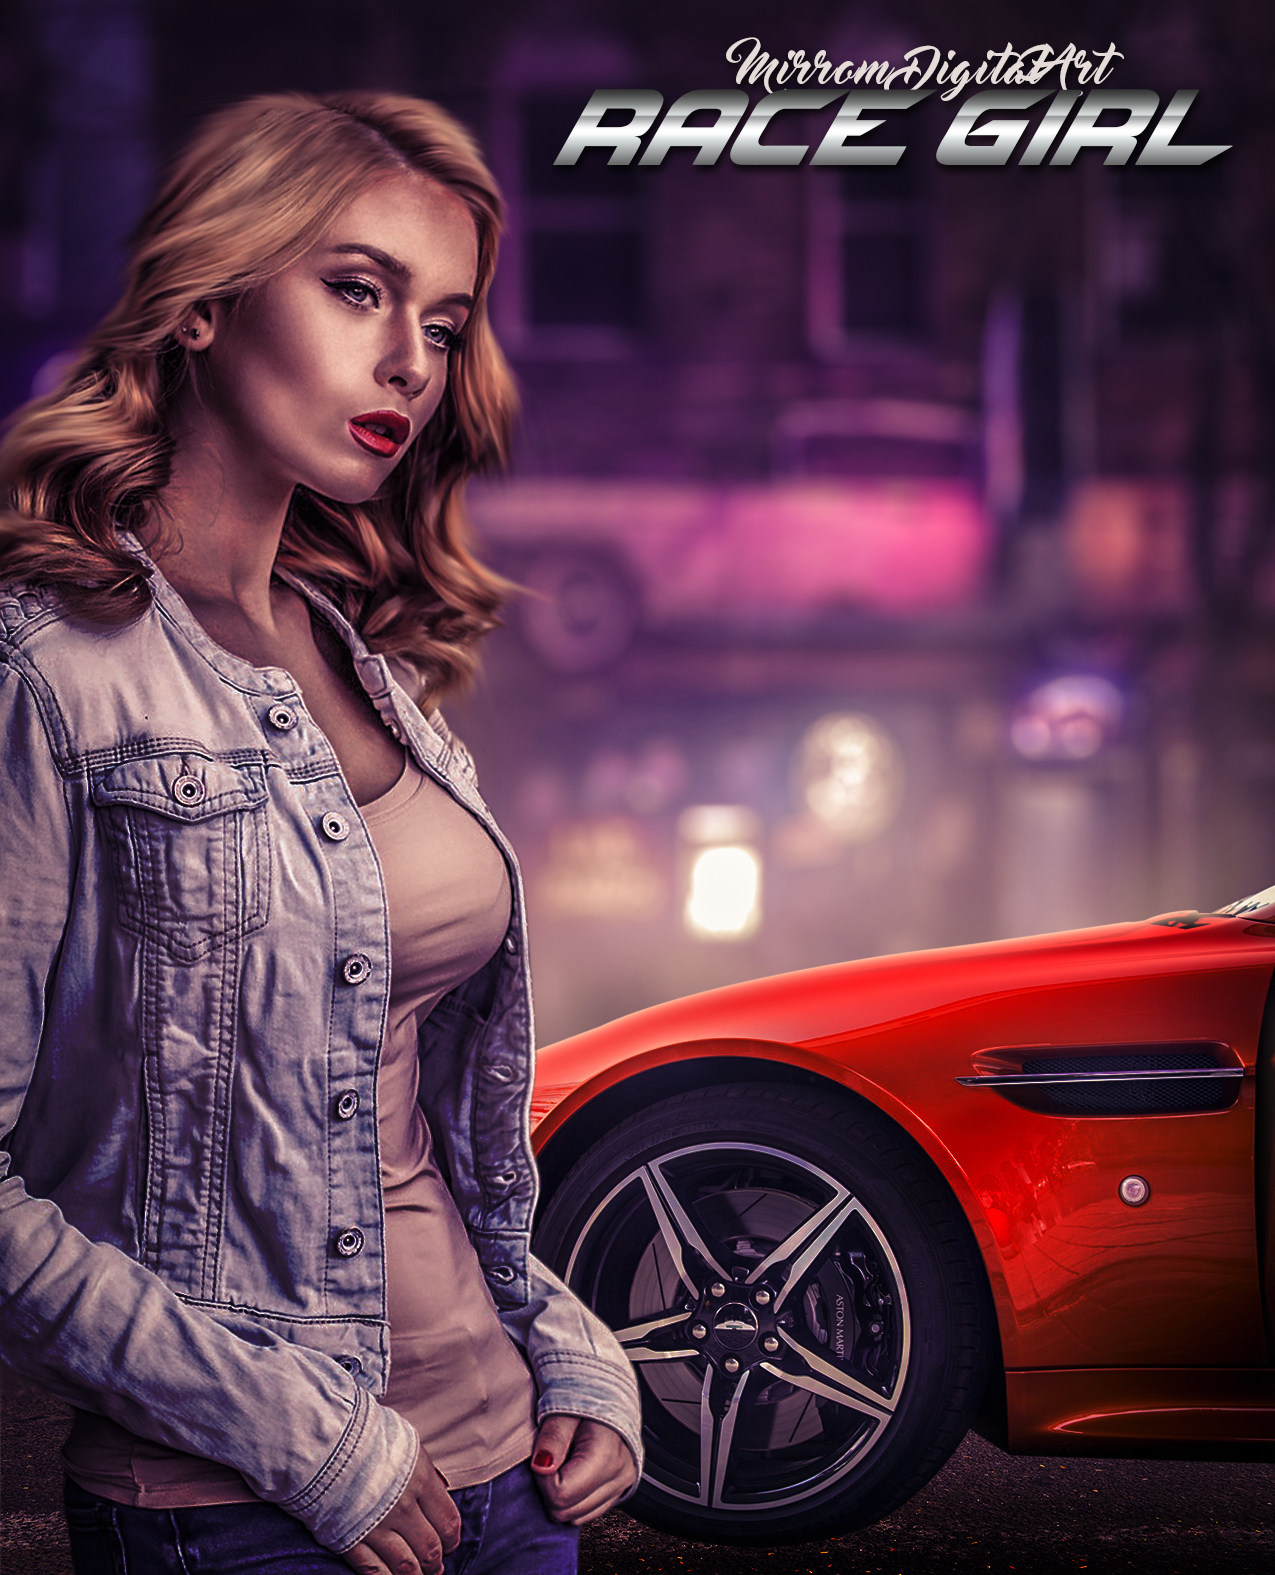 Create a Racing Game Poster Manipulation Effect In Photoshop CC